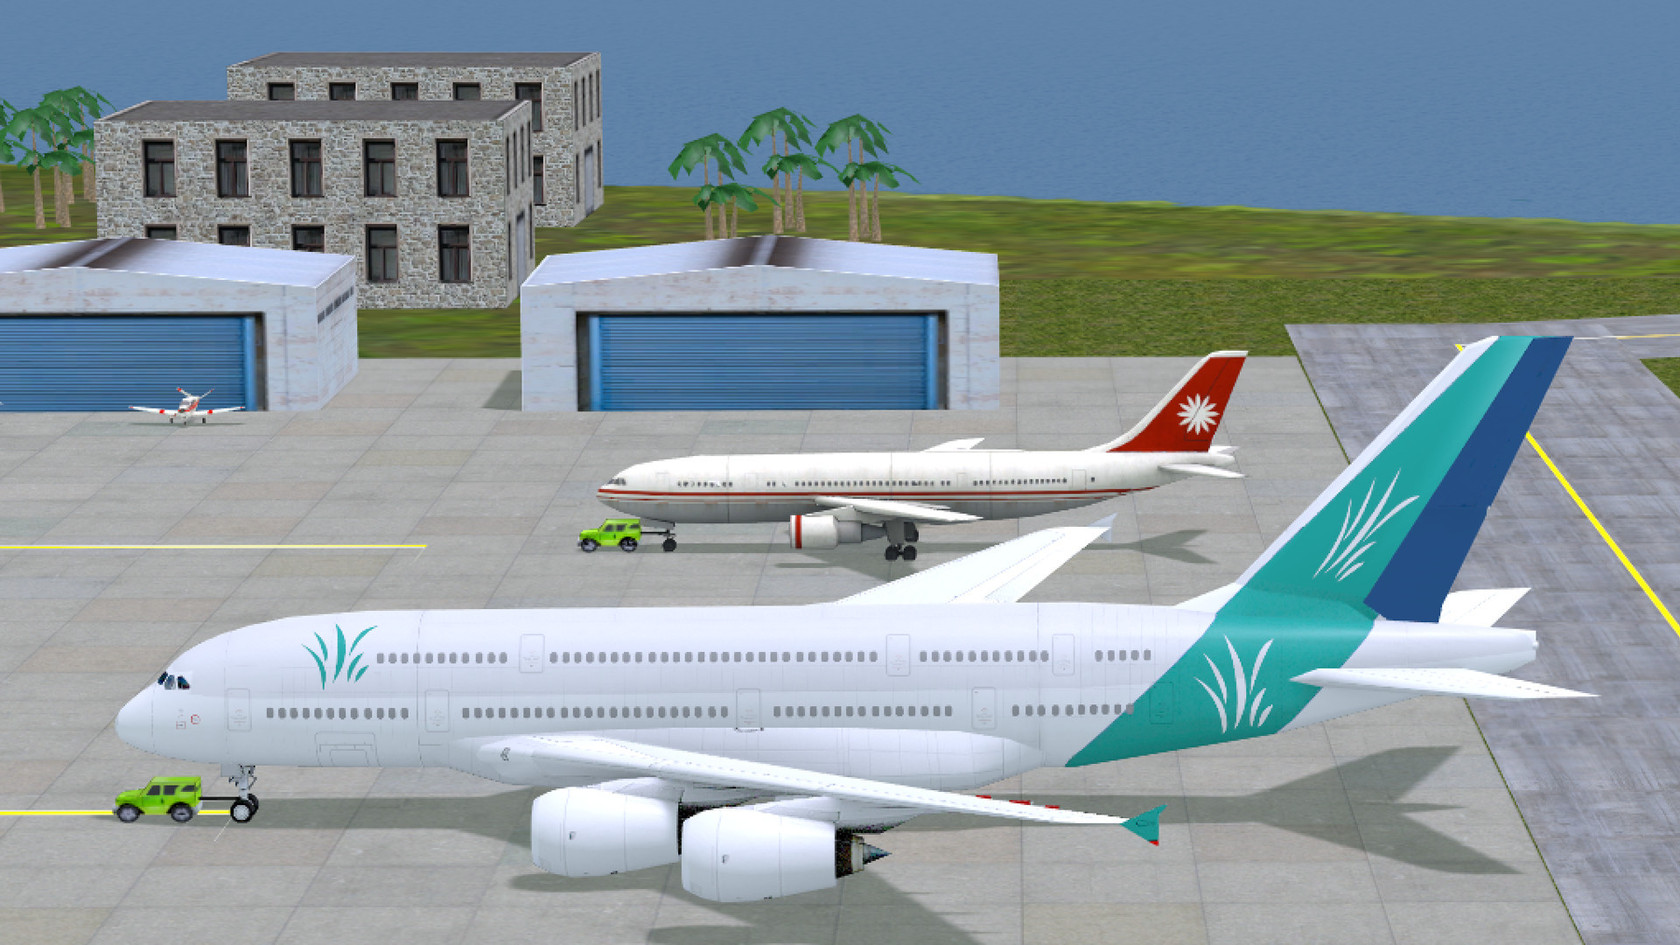 airport madness 3d full version free download